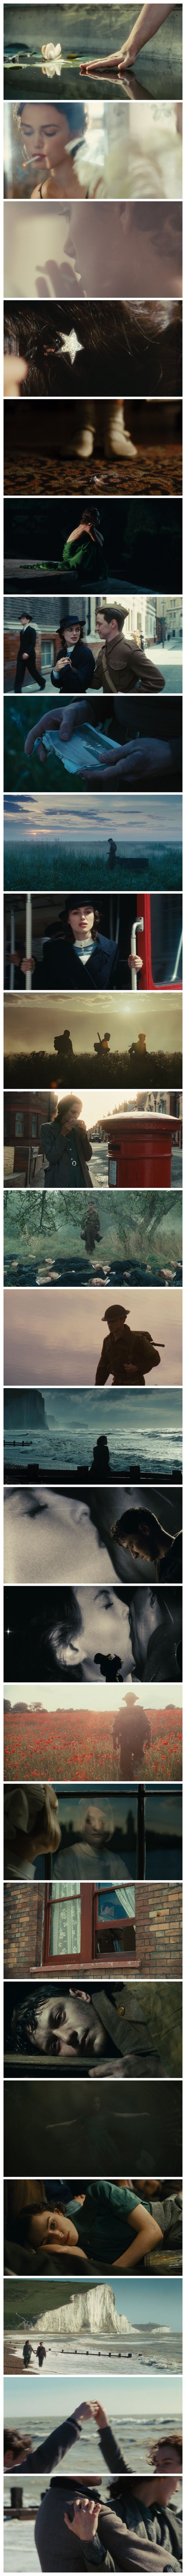 The movie that made me want to be a photographer. Specifically that frame with McAvoy and the red flowers as he walks into the sunset